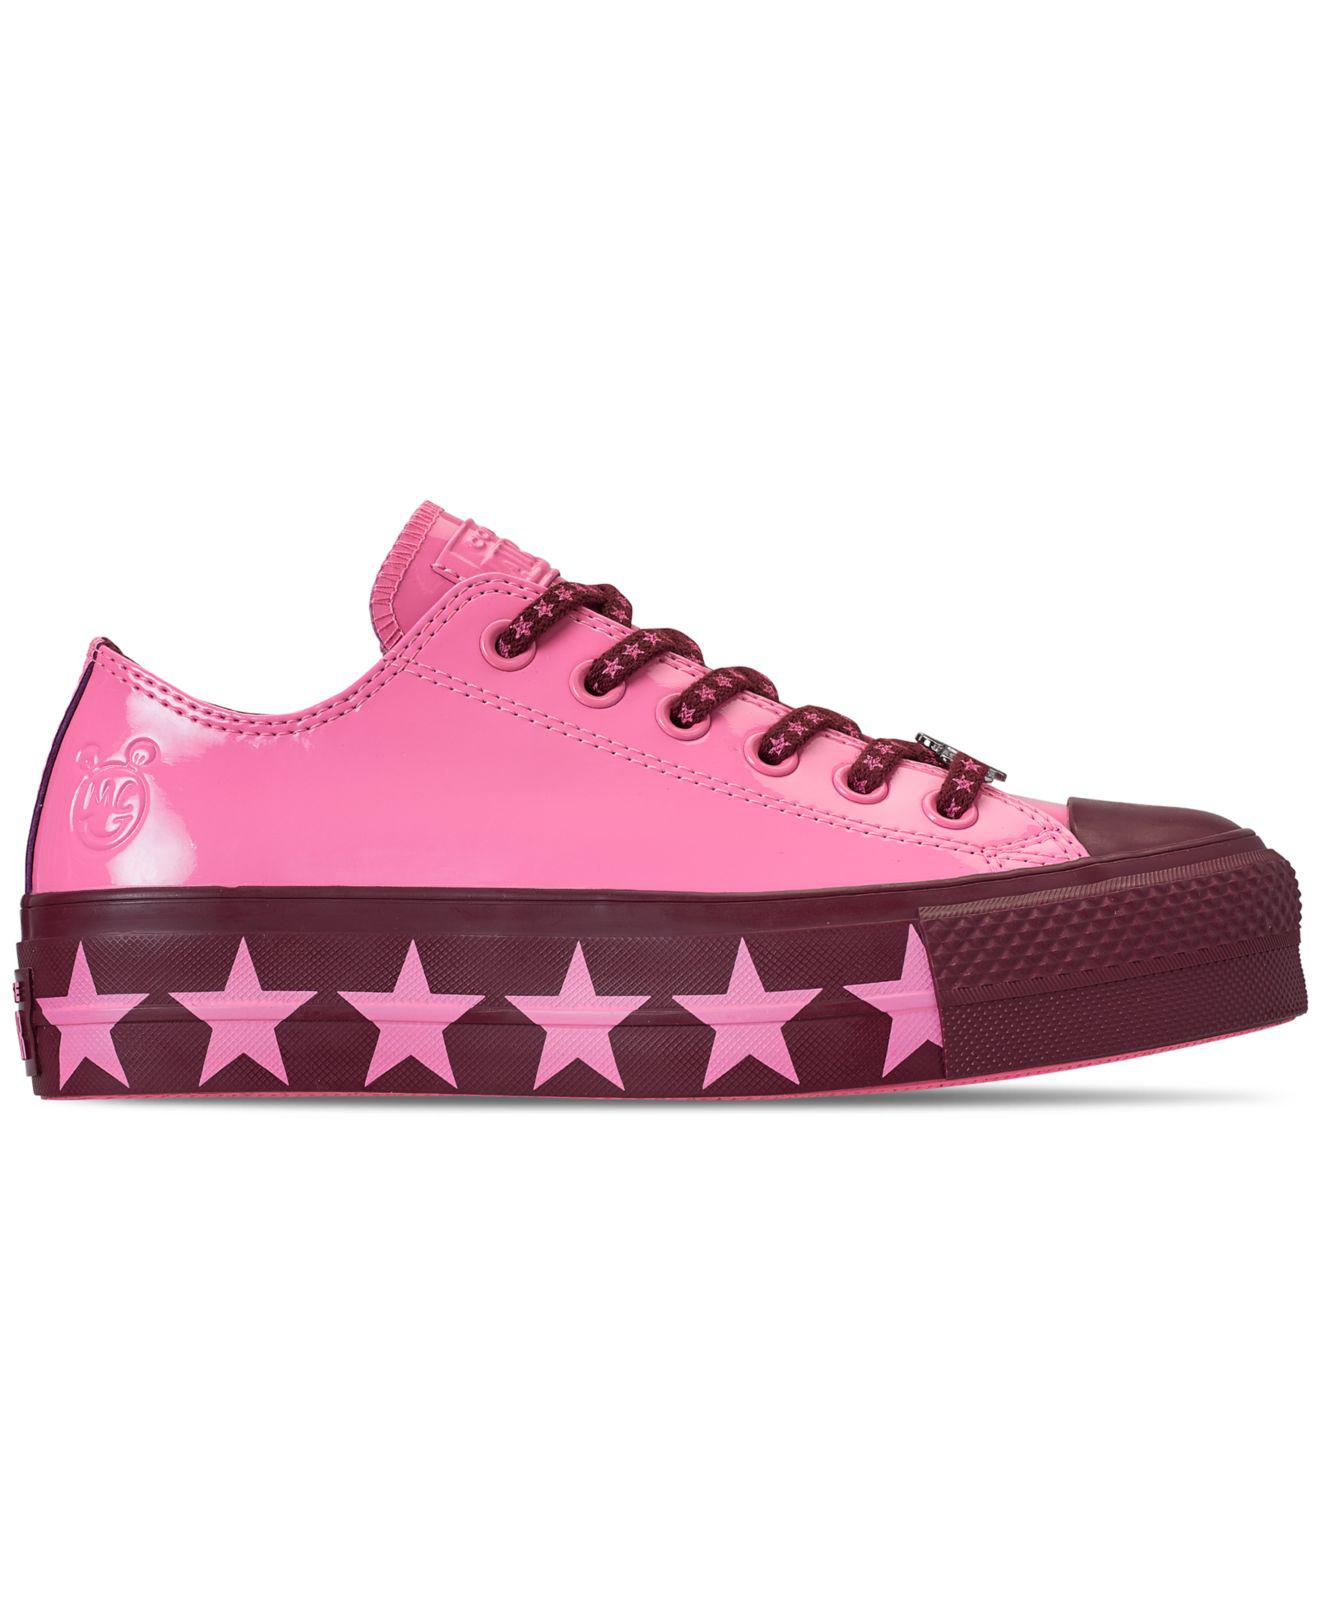 a3f222a18e9d Lyst - Converse X Miley Cyrus Chuck Taylor All Star Lift Ox Pink  Dark  Burgundy  Pink in Pink - Save 50%